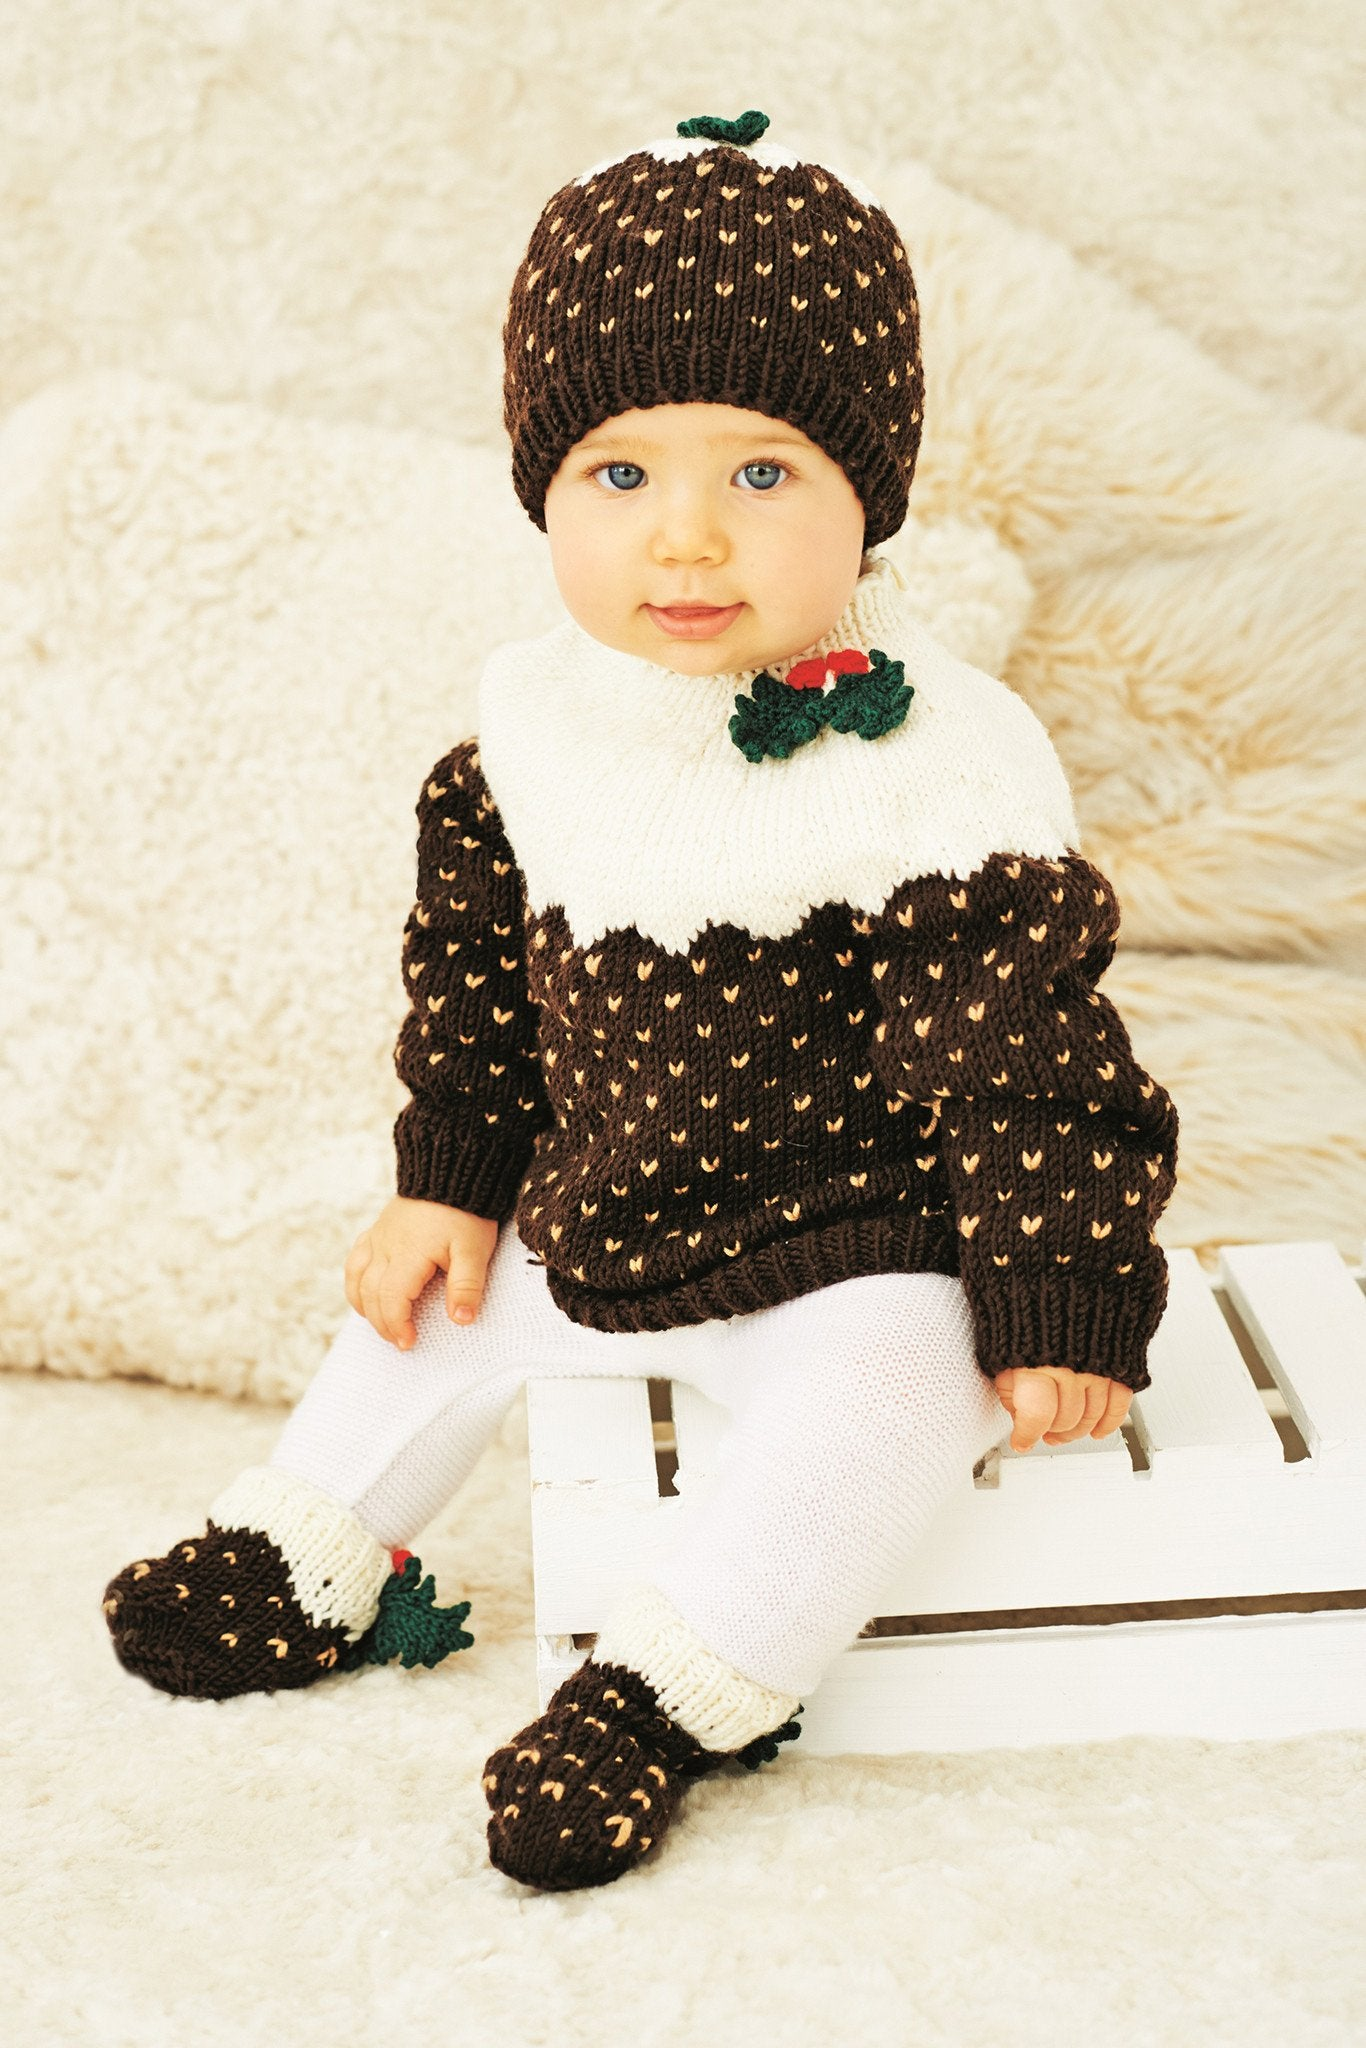 d856e21792f Baby Christmas Pudding Costume   Best Christmas Outfits For Babies ...